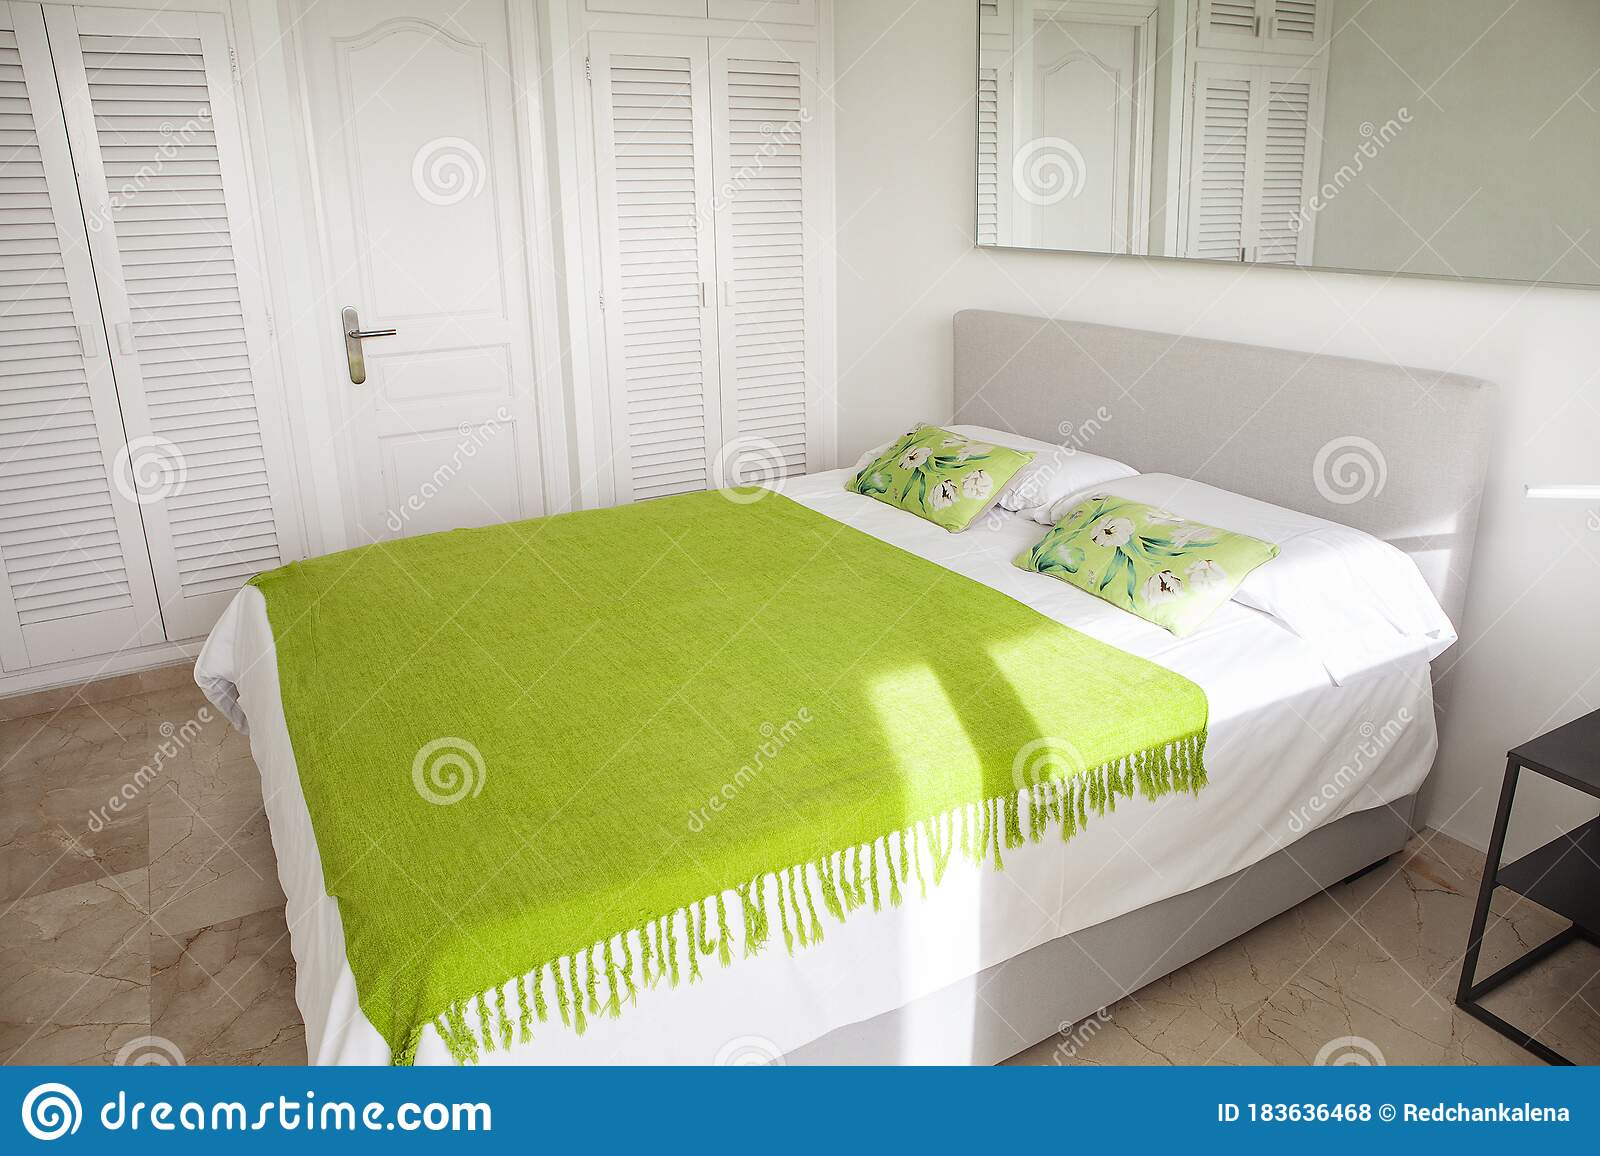 Interior Design In Bedroom Of Pool Villa With Cozy King Bed Bedroom With Green And White Colors Stock Photo Image Of Hotel Indoor 183636468